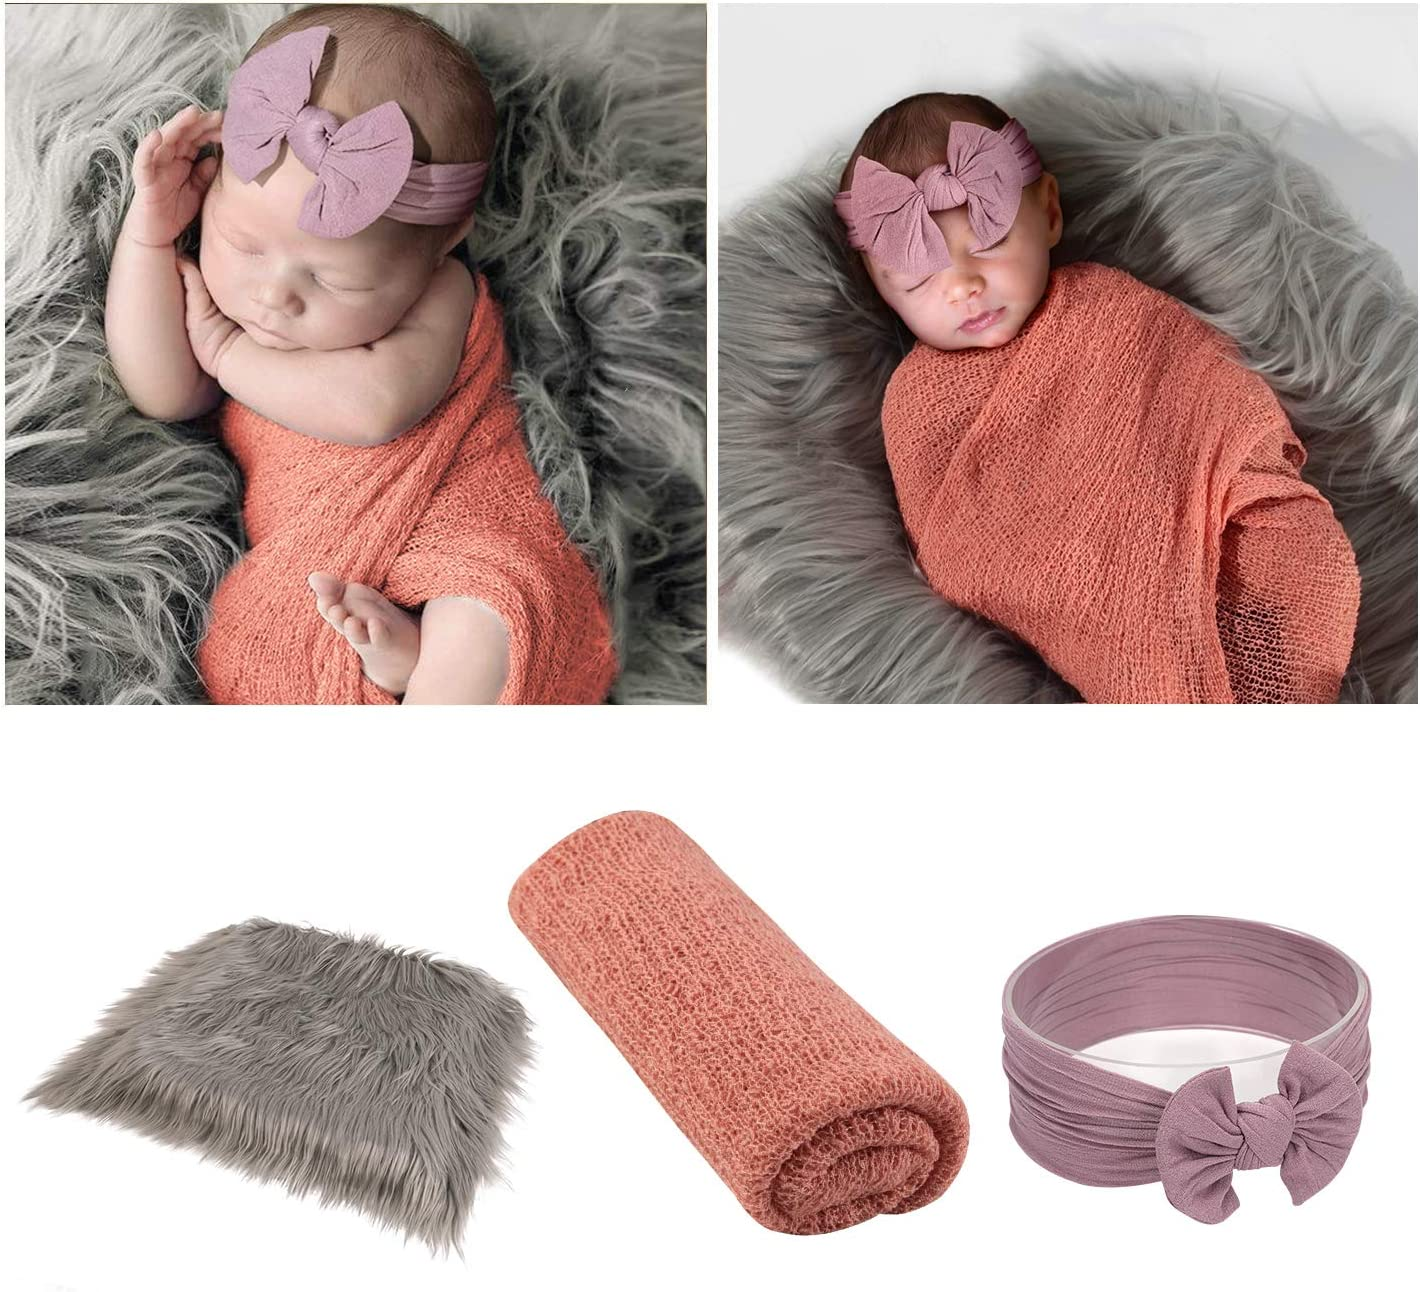 Rug Photo Props Faux Fur Sleeping Blanket  Toddler Swaddle     Baby Wrap